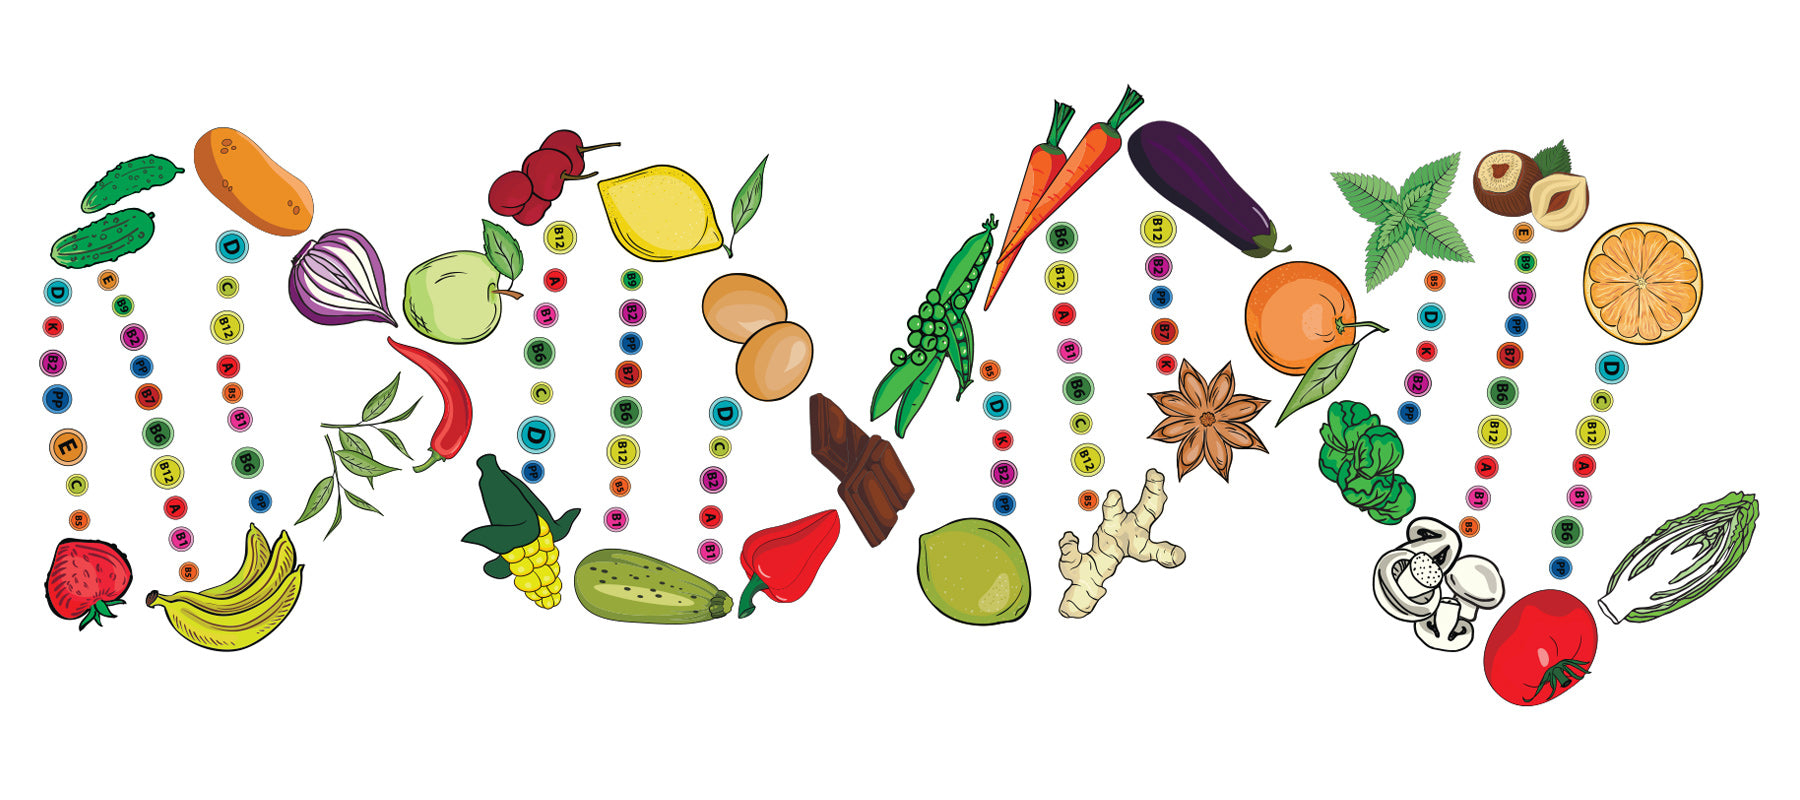 Nutrigenomics DNA Food Genes Interaction